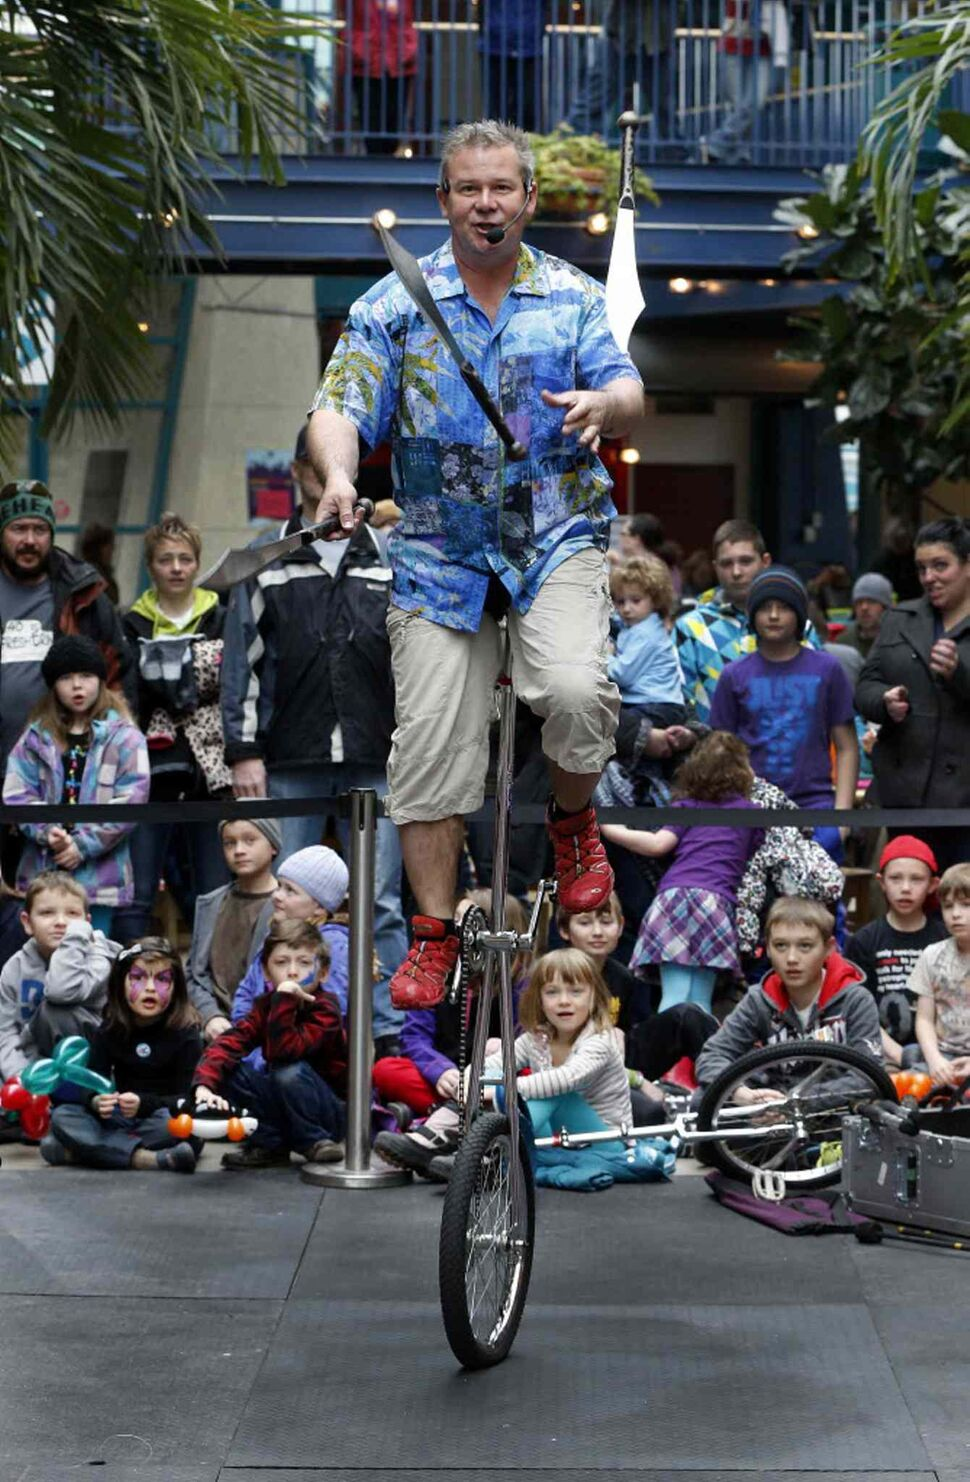 Battie juggles on his unicycle, capturing the attention of a crowd of kids at the Forks. (KEN GIGLIOTTI / WINNIPEG FREE PRESS)